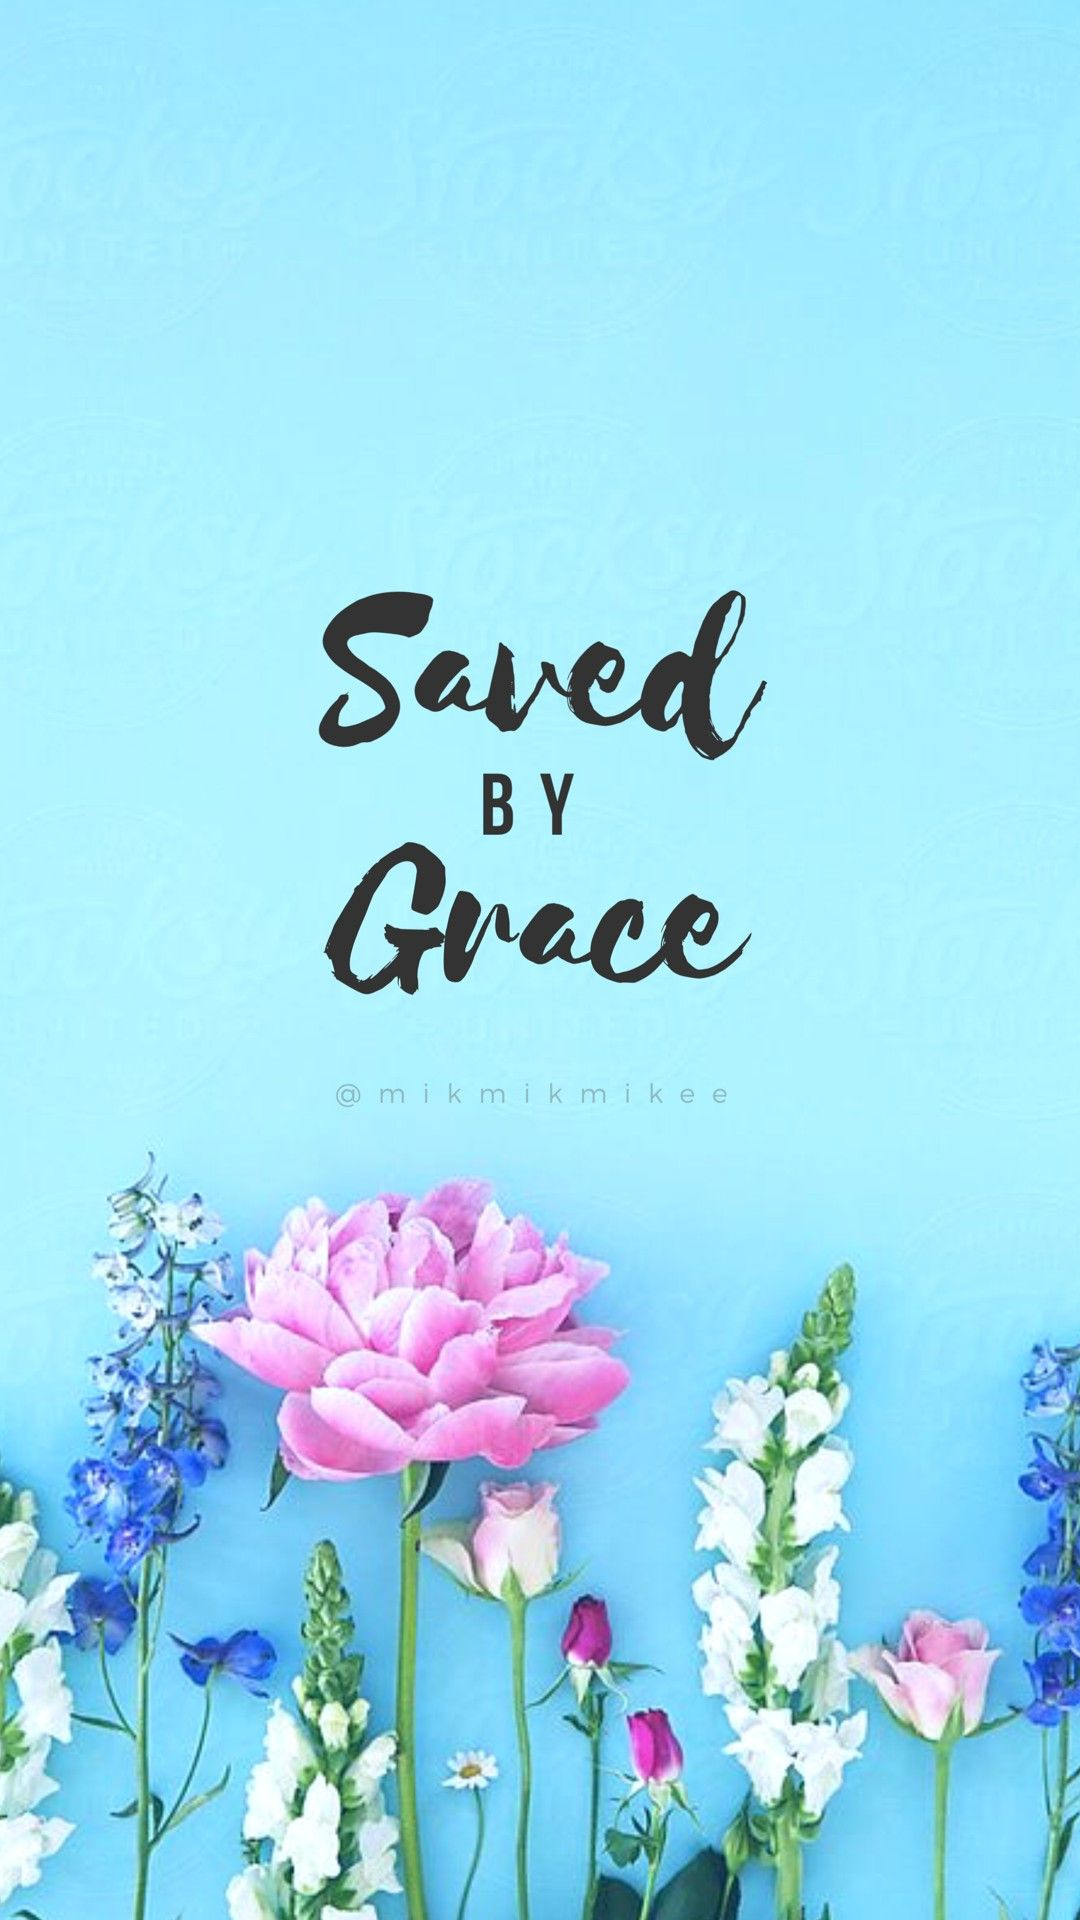 Saved By Grace Wallpaper By Mikmikmikee Catholic Wallpaper Lock Screen Wallpaper Iphone Phone Wallpaper